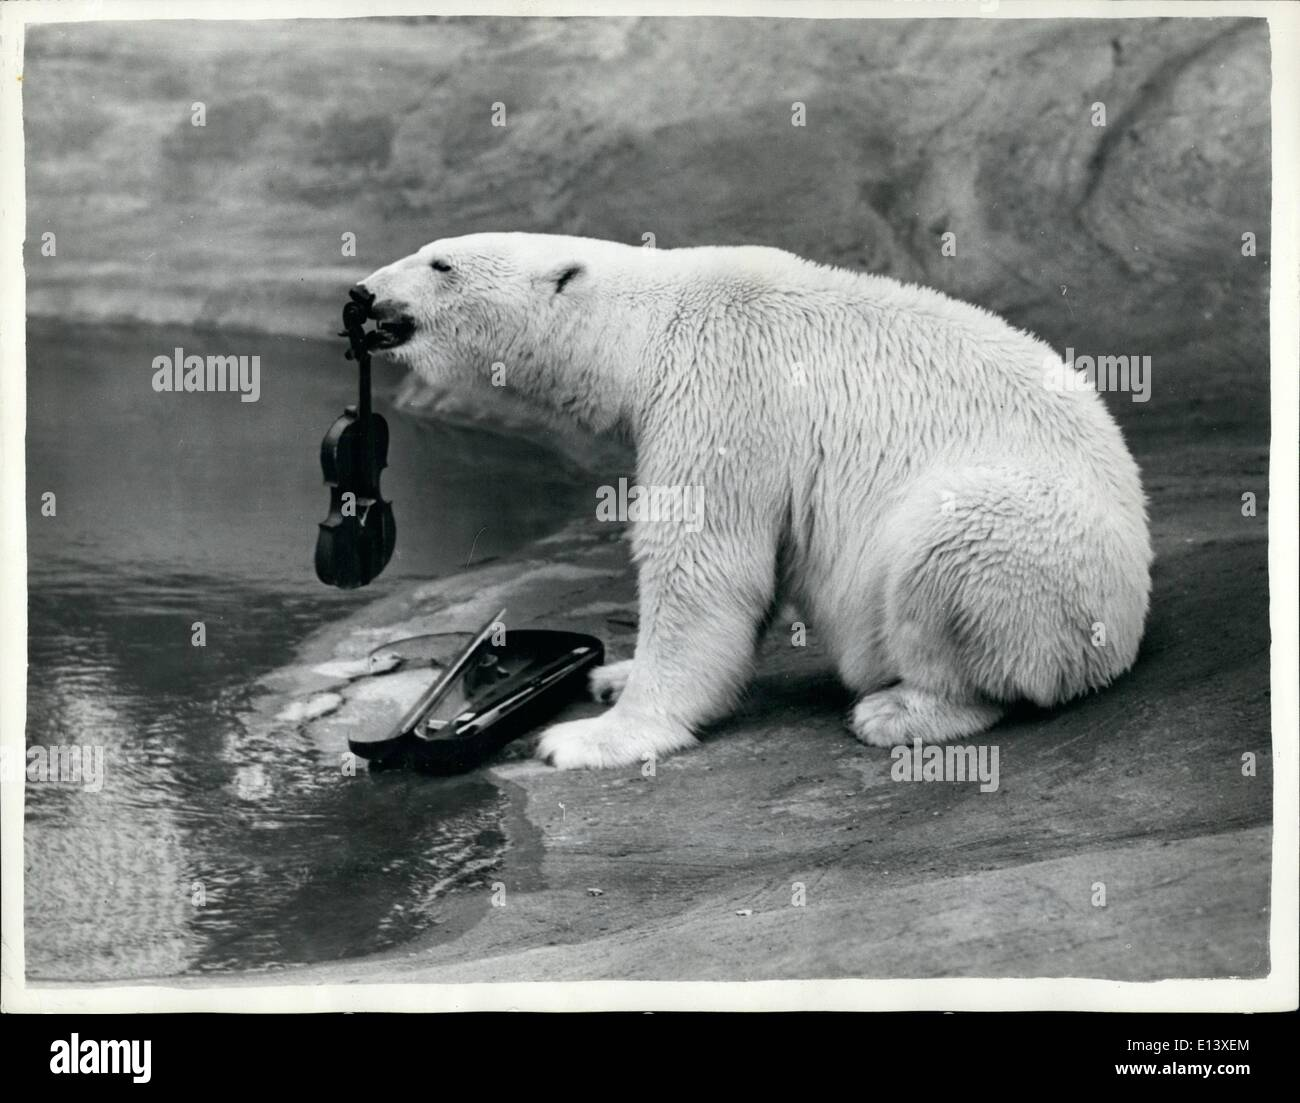 Mar. 27, 2012 - Freda Te Fiddler has Many Strings To Her Bow: Freda the polar bear was a bit non-plussed when faced - Stock Image